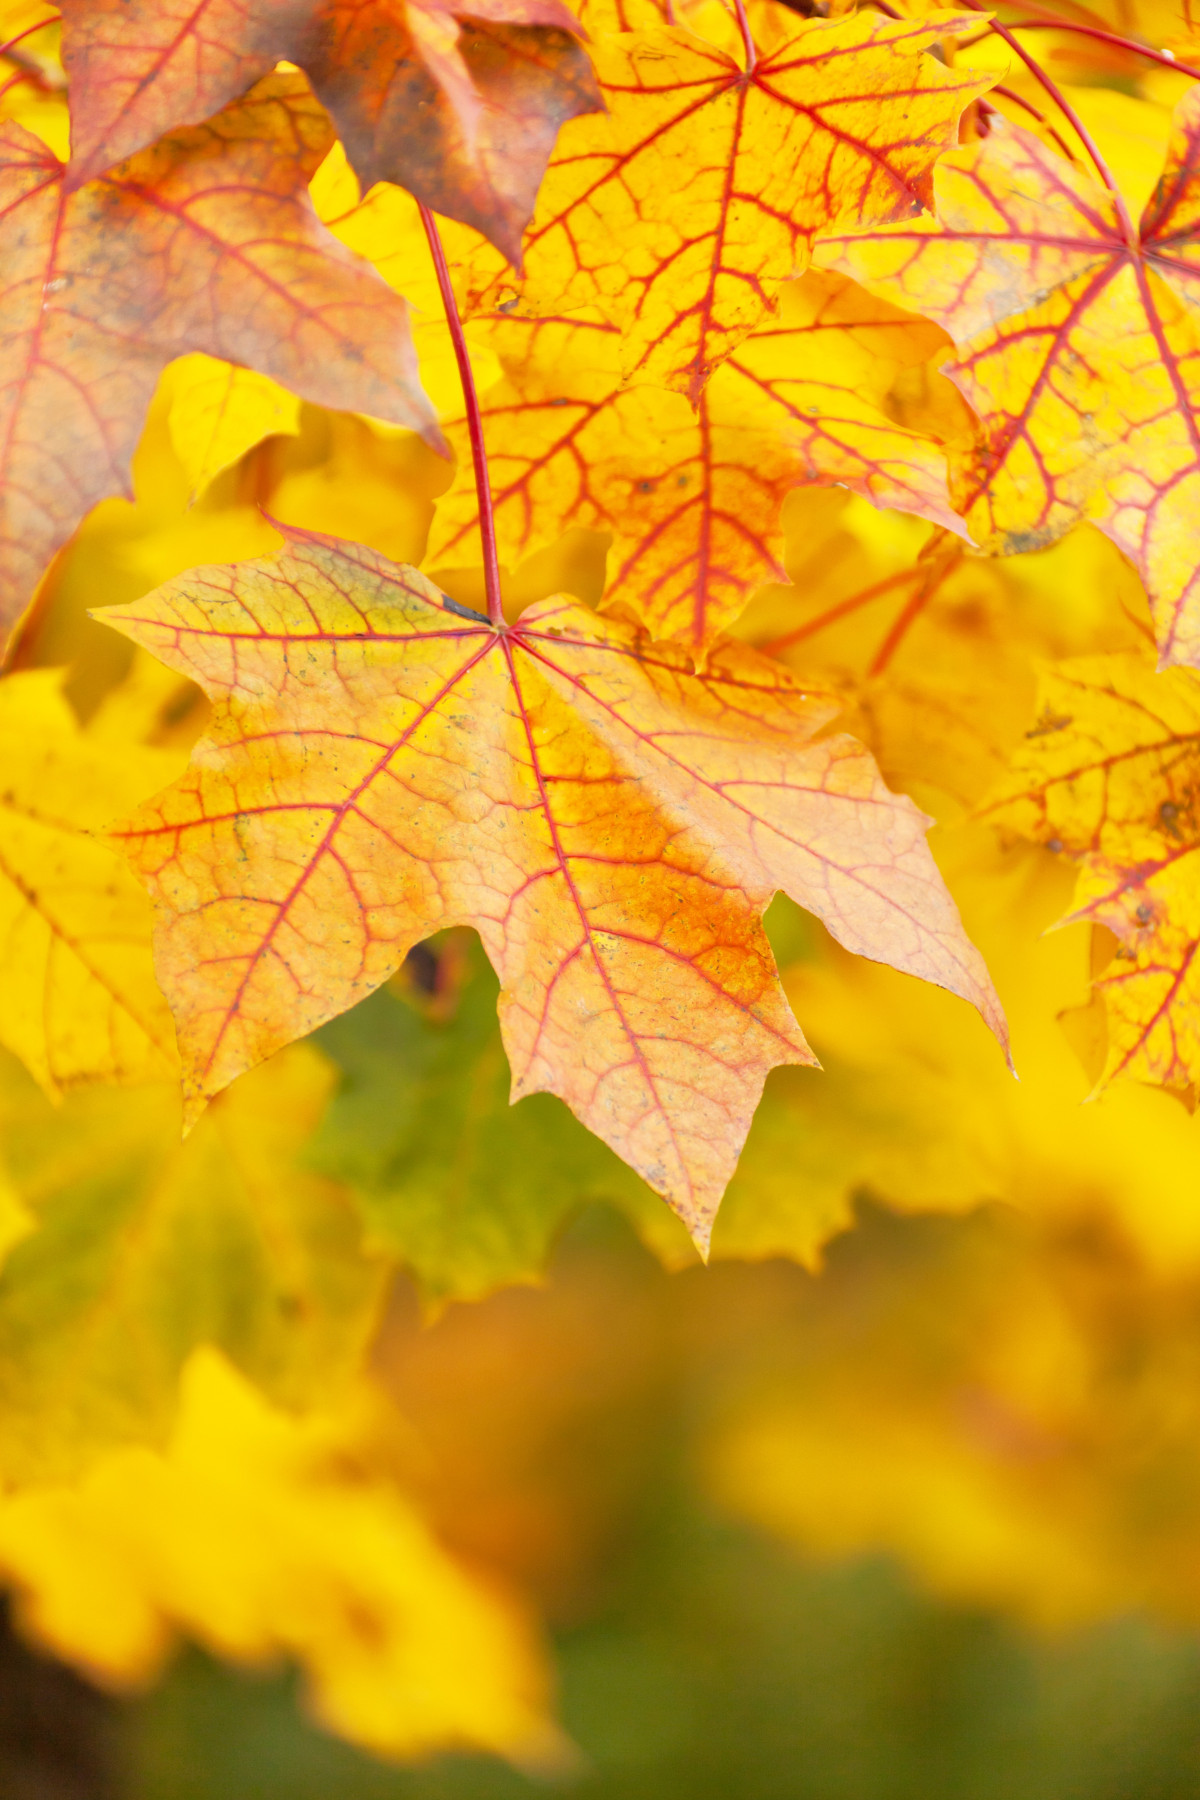 Autumn Leaf Fall Wallpaper Free Images Nature Branch Abstract Sunlight Fall